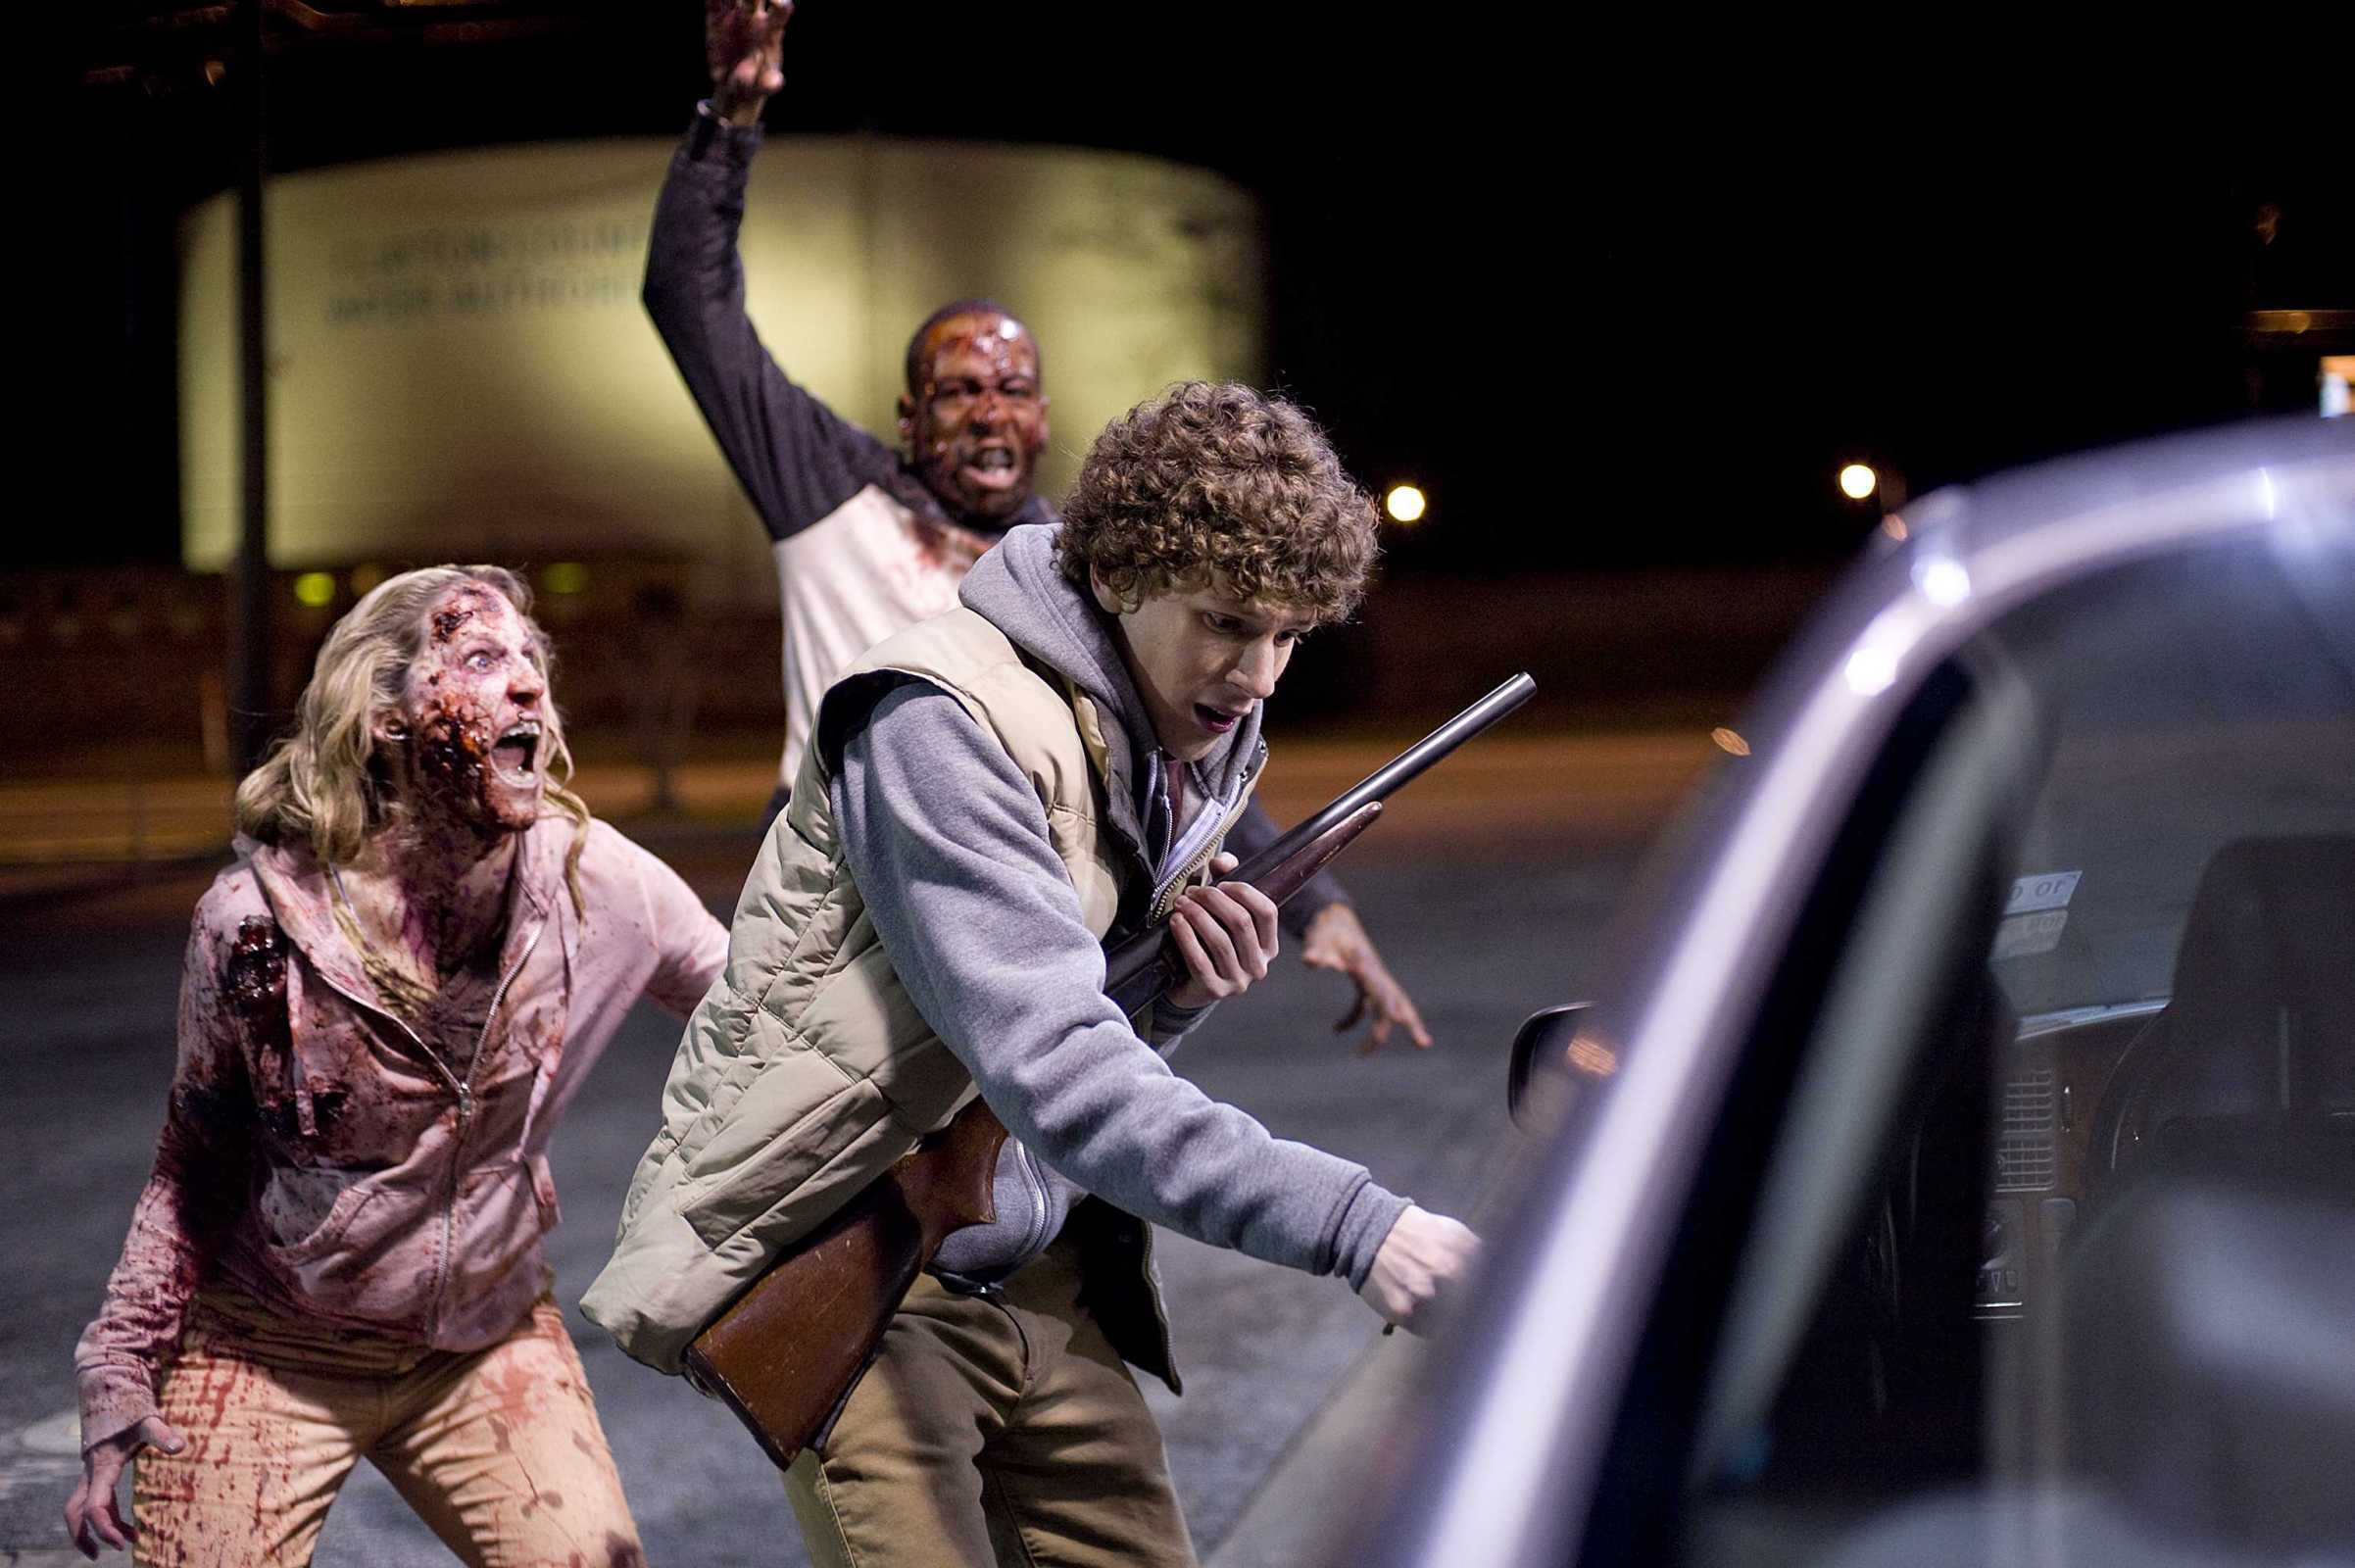 ZombieLand stills - Zombieland Photo (8538011) - Fanpop